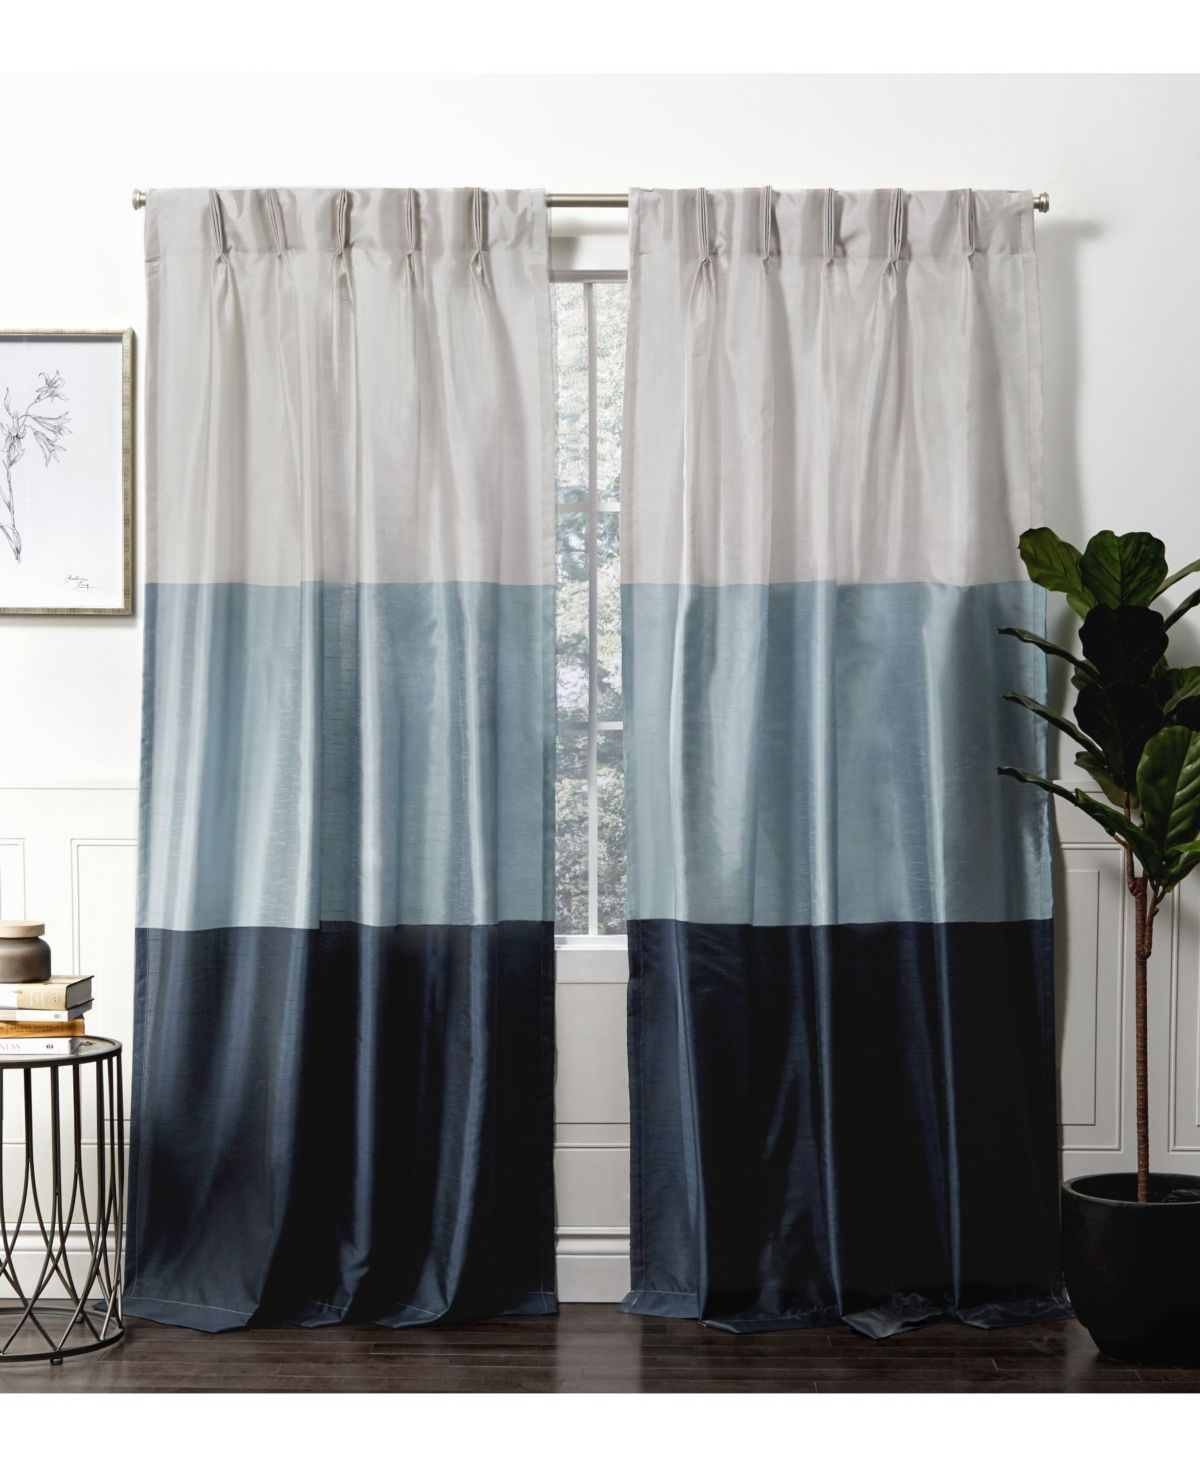 Exclusive Home Curtains Chateau Striped Faux Silk Pinch Pleat Curtain Panel Pair 27 X 84 Reviews Window Treatments Blinds Macy S Home Curtains Panel Curtains Pinch Pleat Curtains